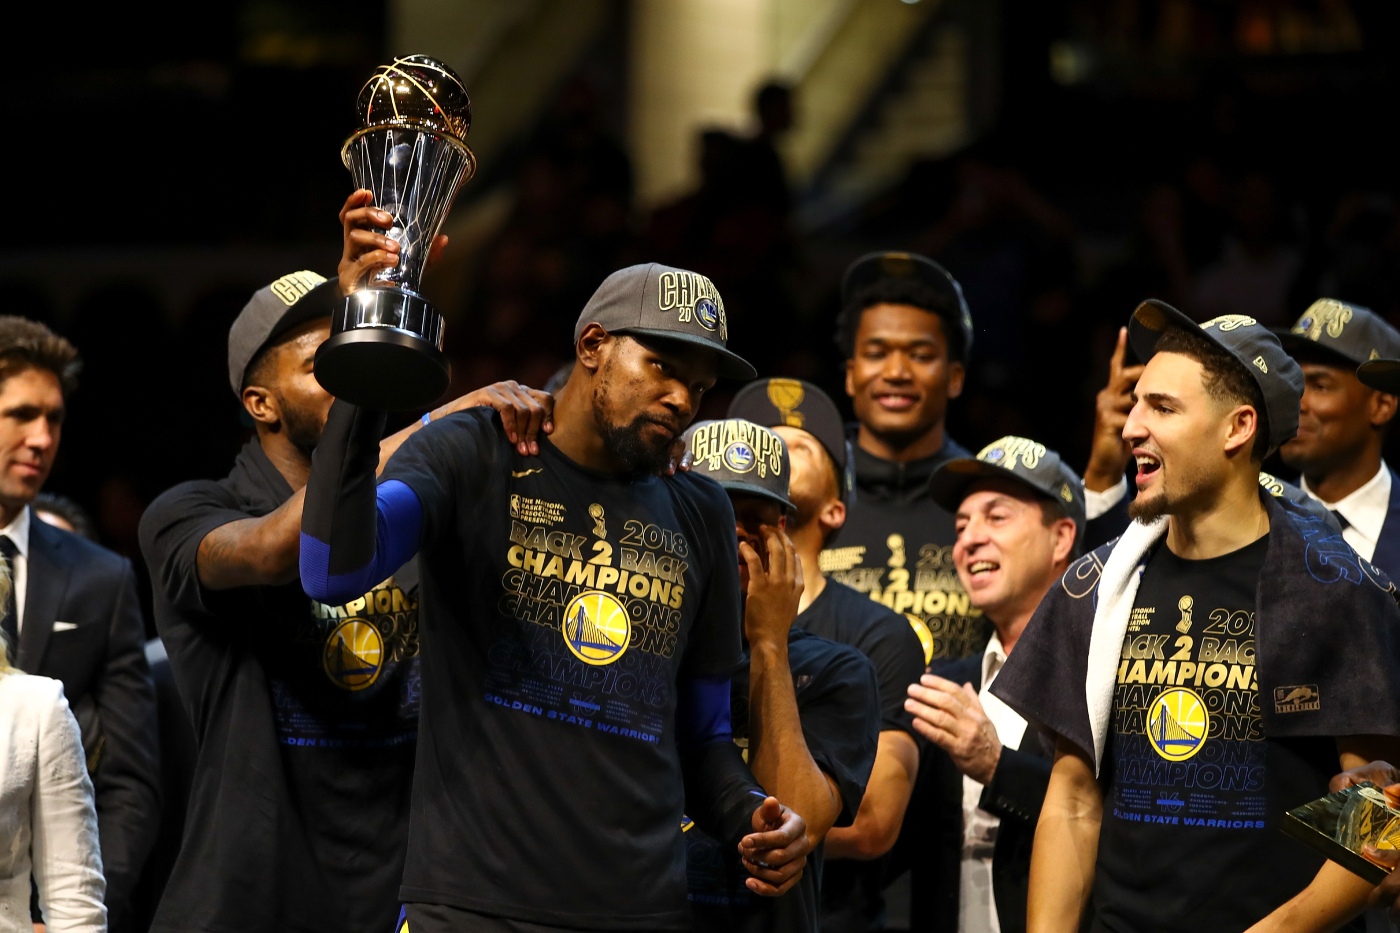 Kevin Durant now plays for the Nets after winning championships with the Golden State Warriors. However, he already misses the Warriors.